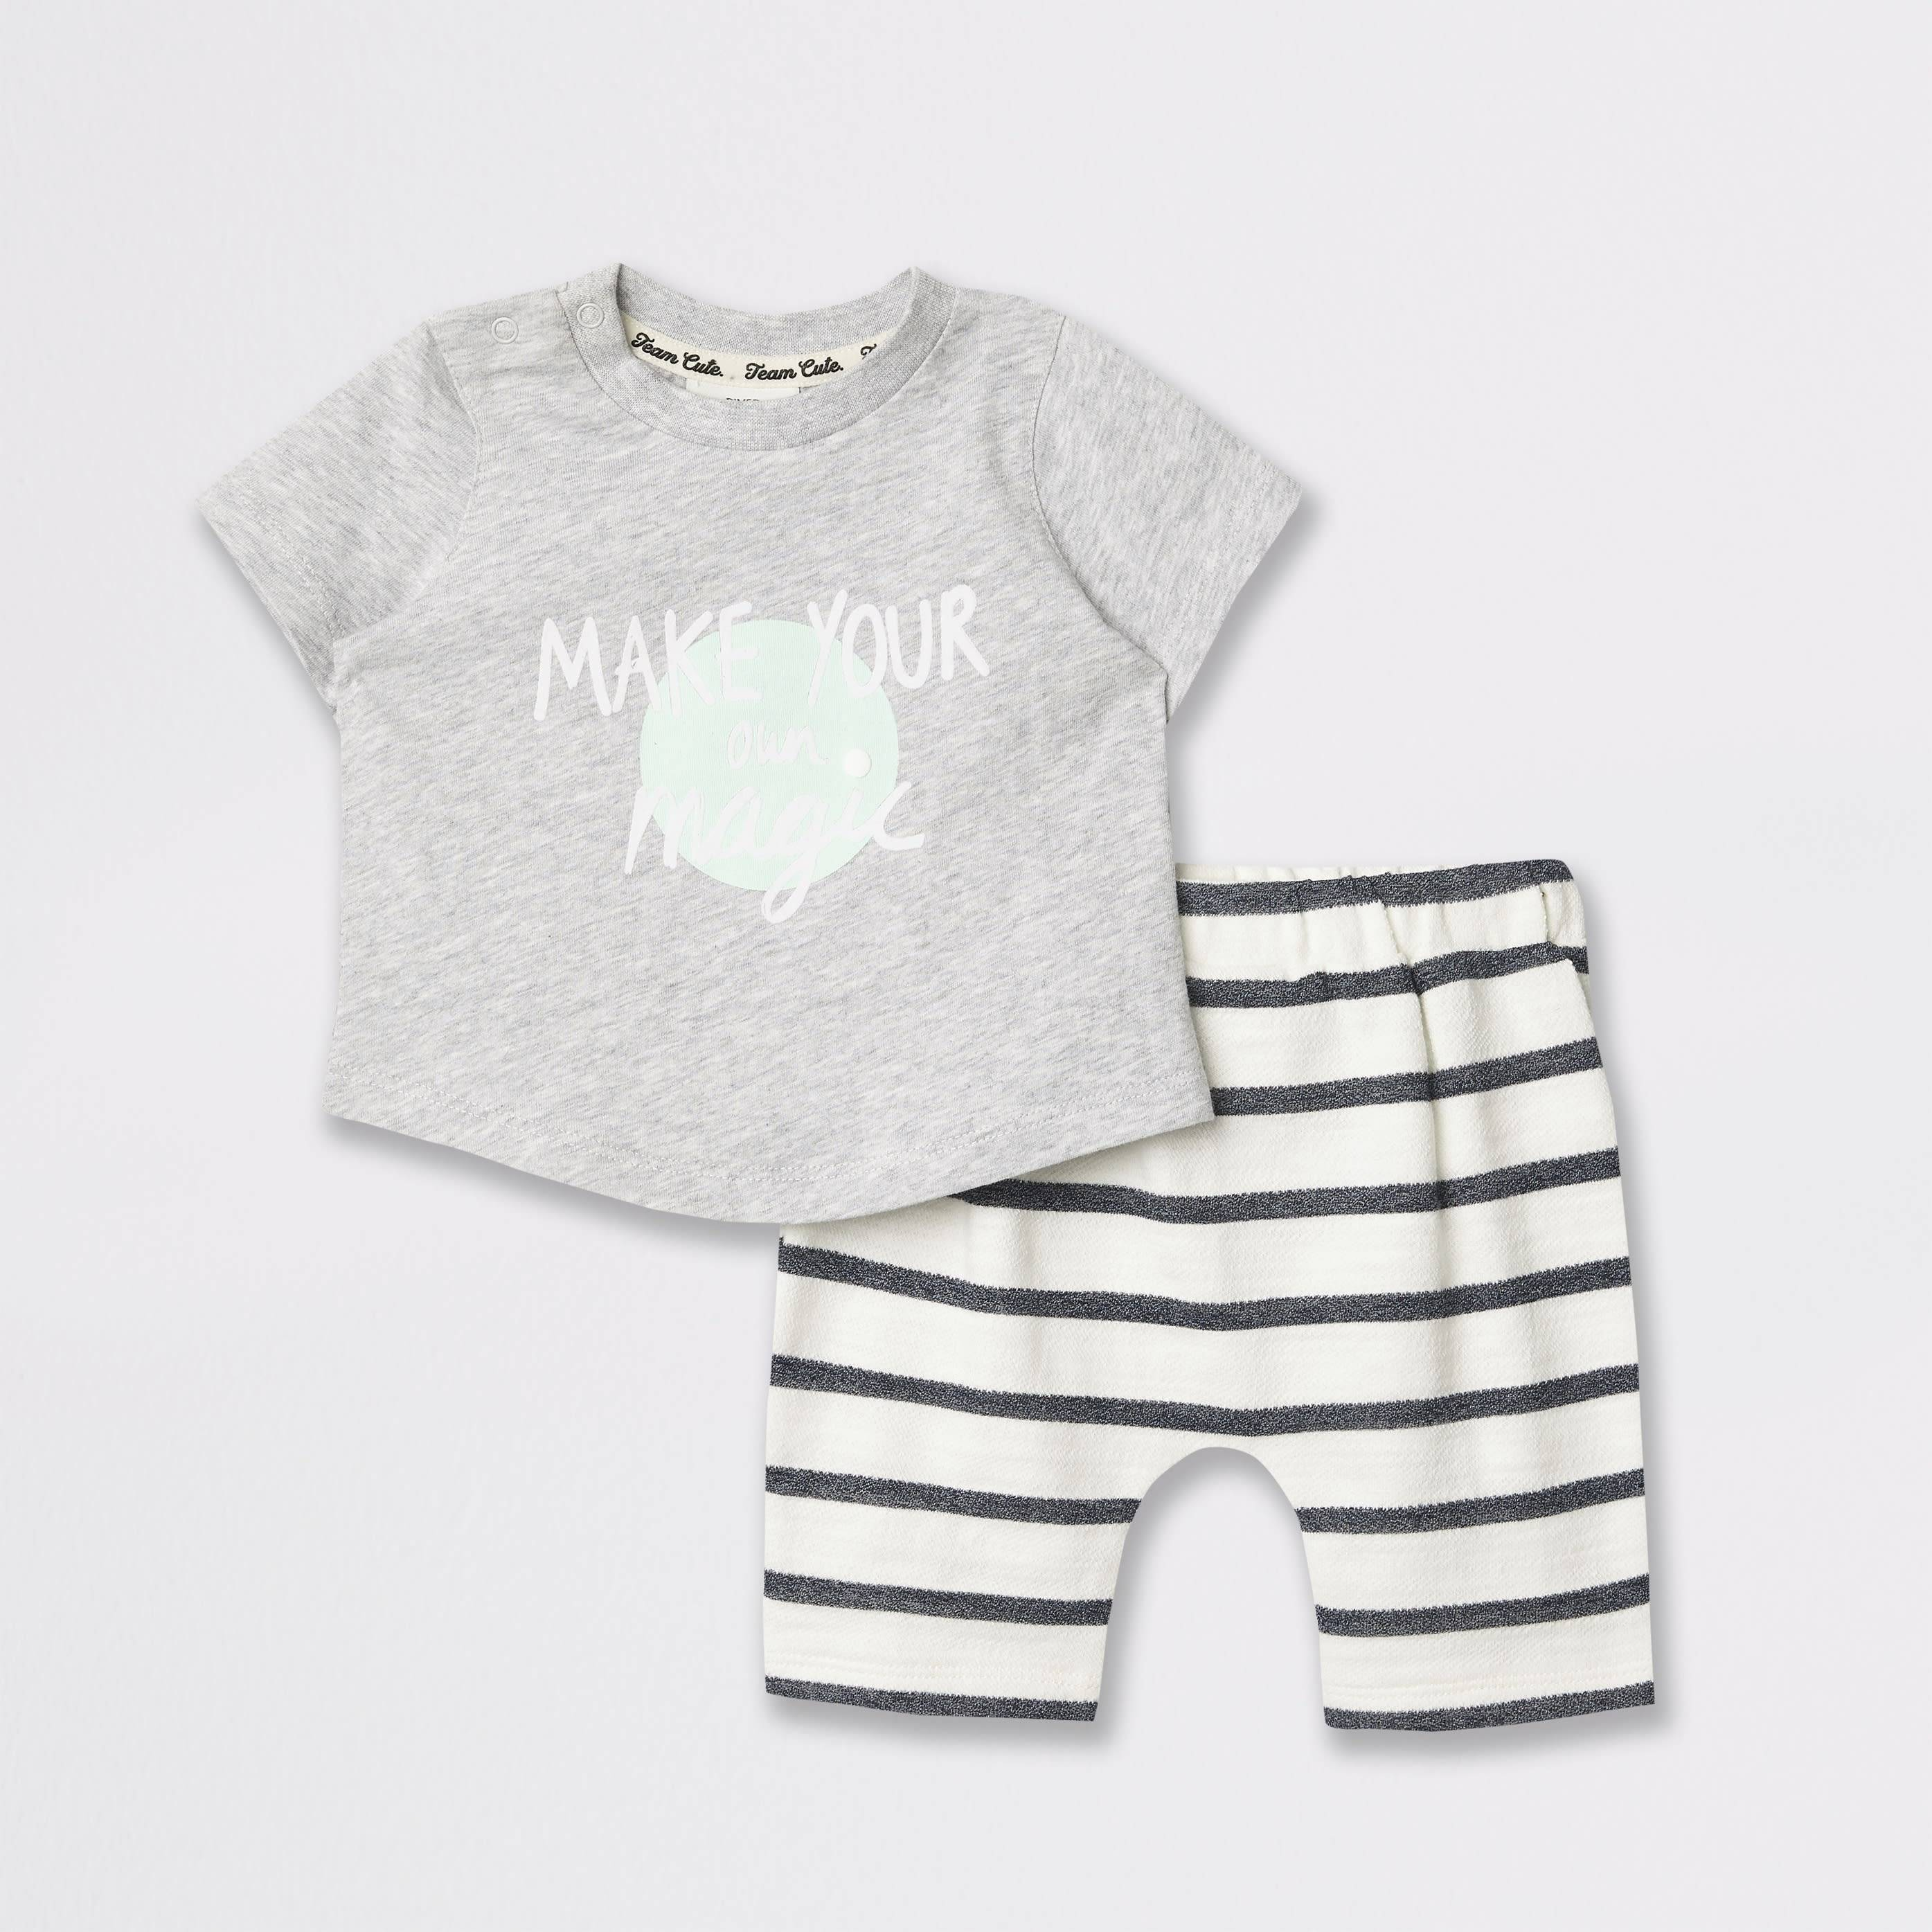 River Island Baby Grey graphic print T-shirt outfit (9-12 Mths)